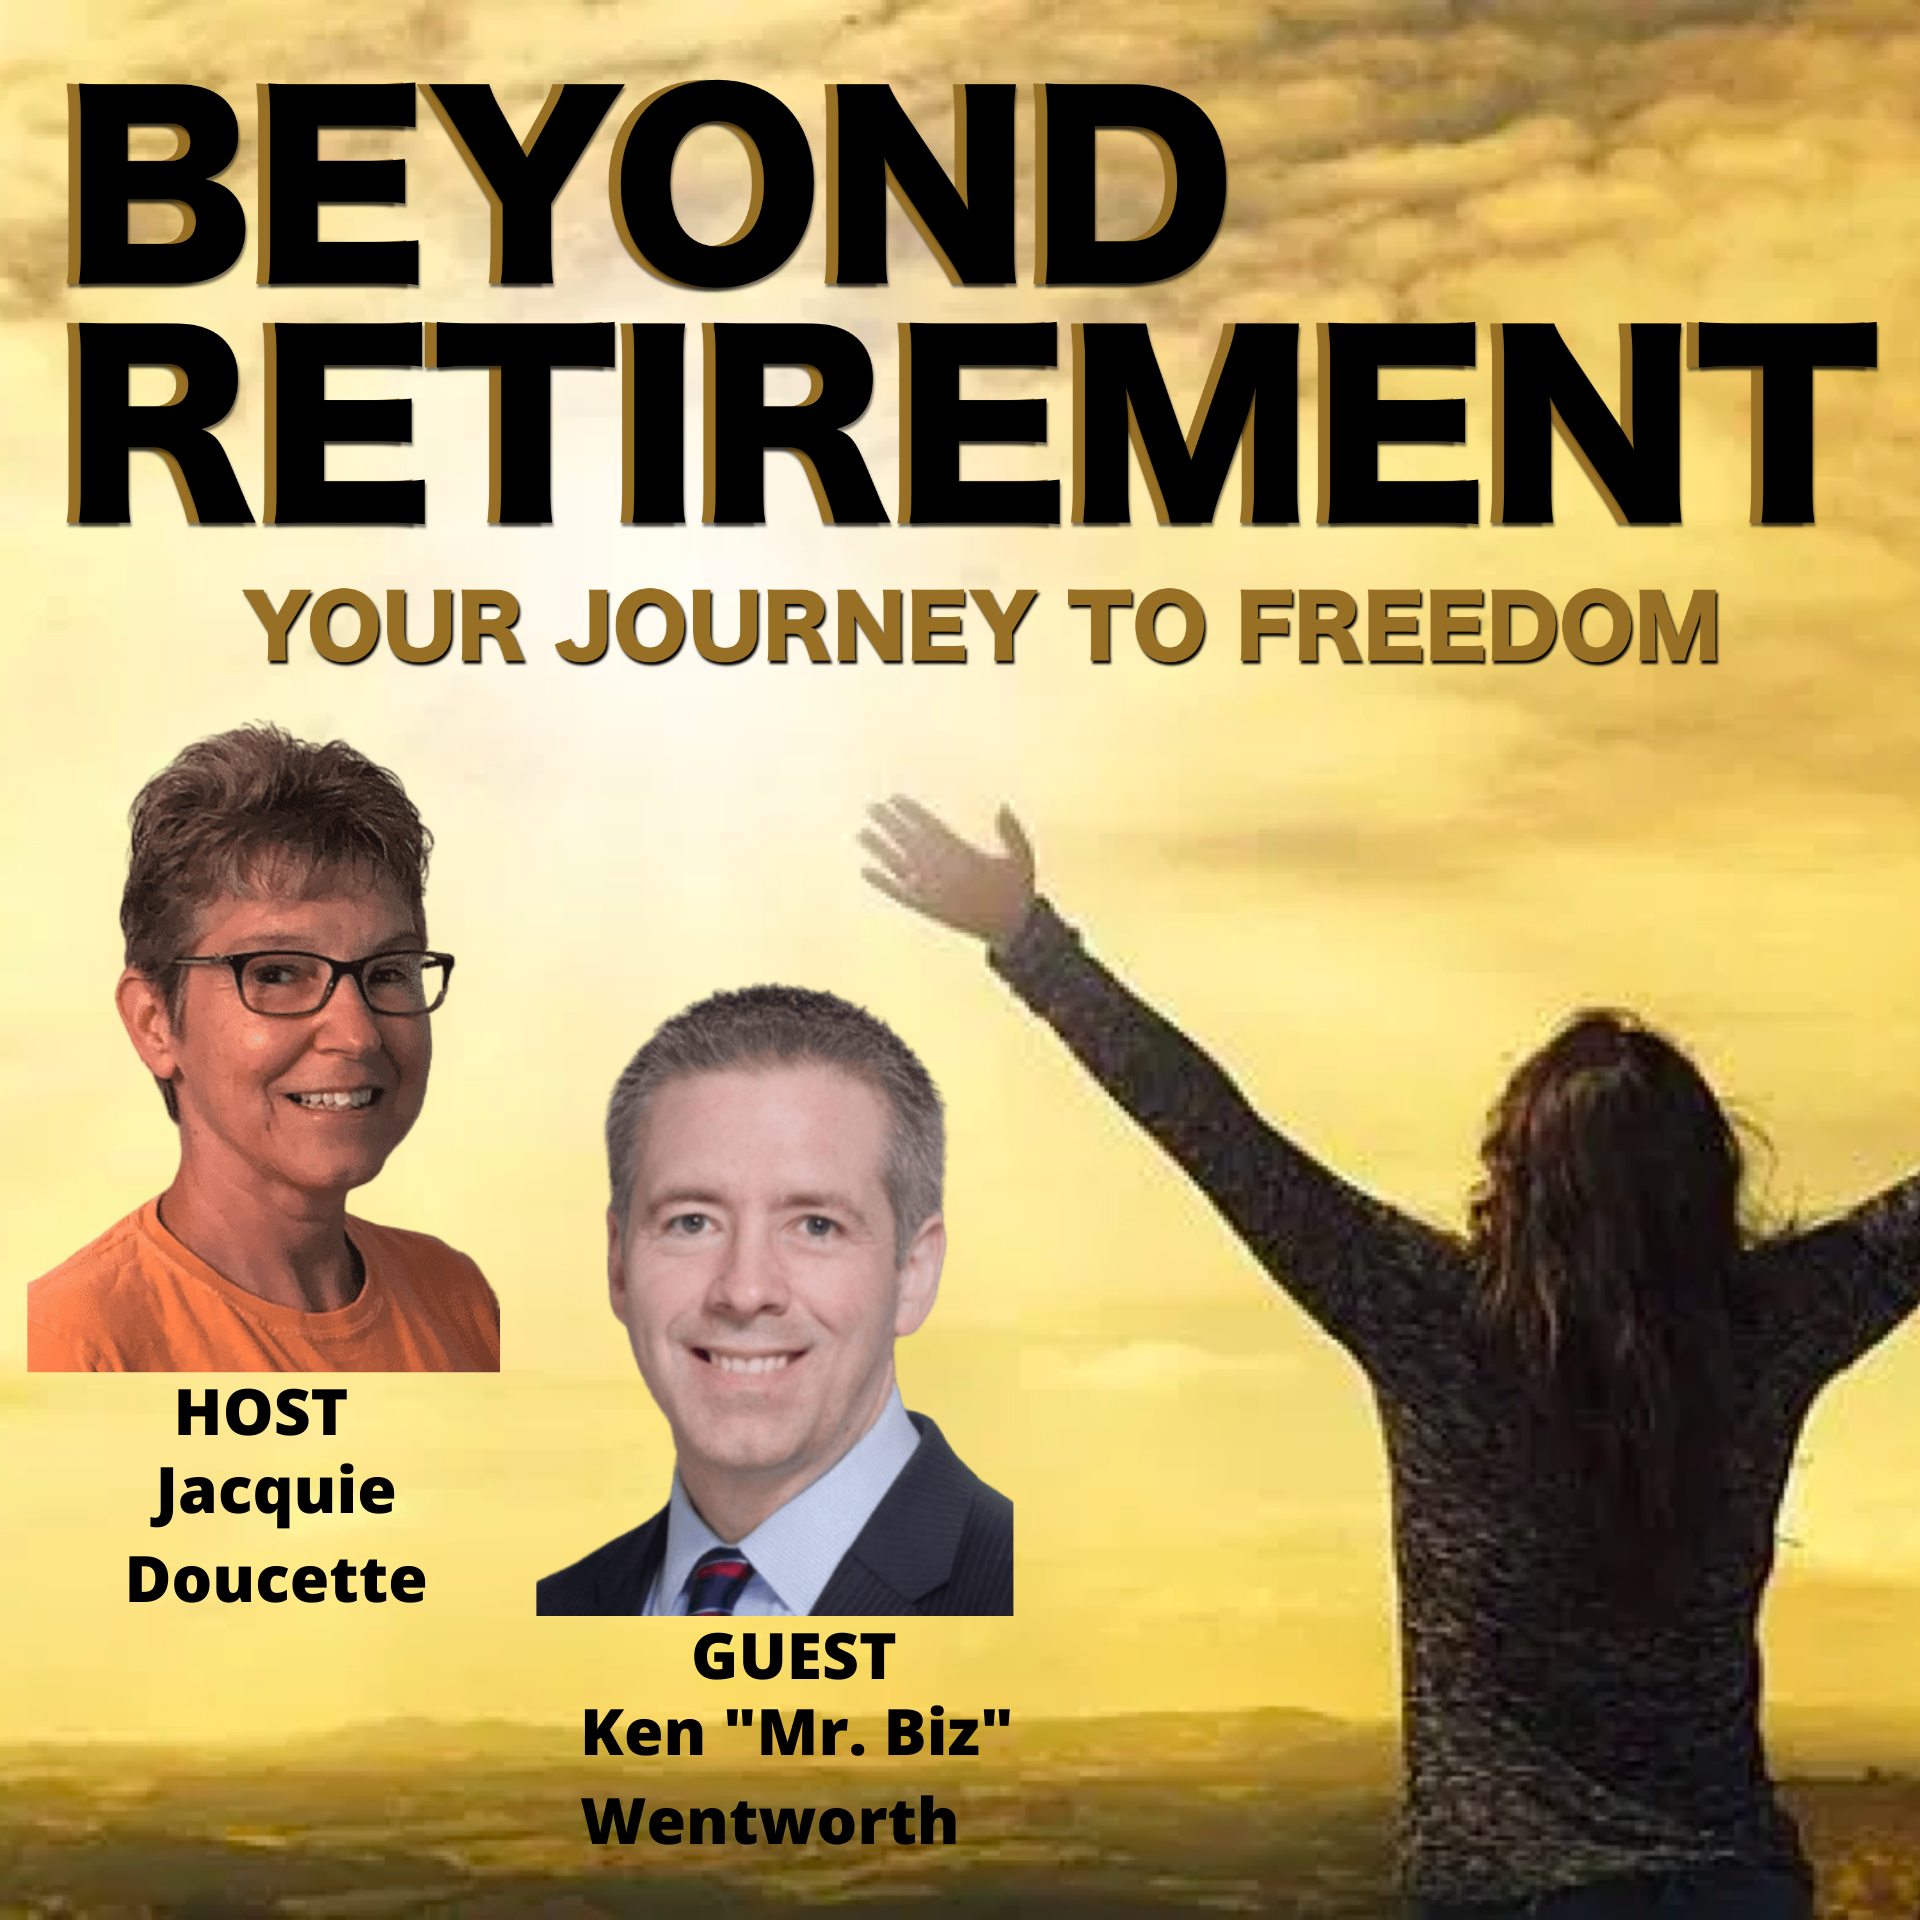 Beyond Retirement Podcast: The Best Ways to Reach Your Full Potential